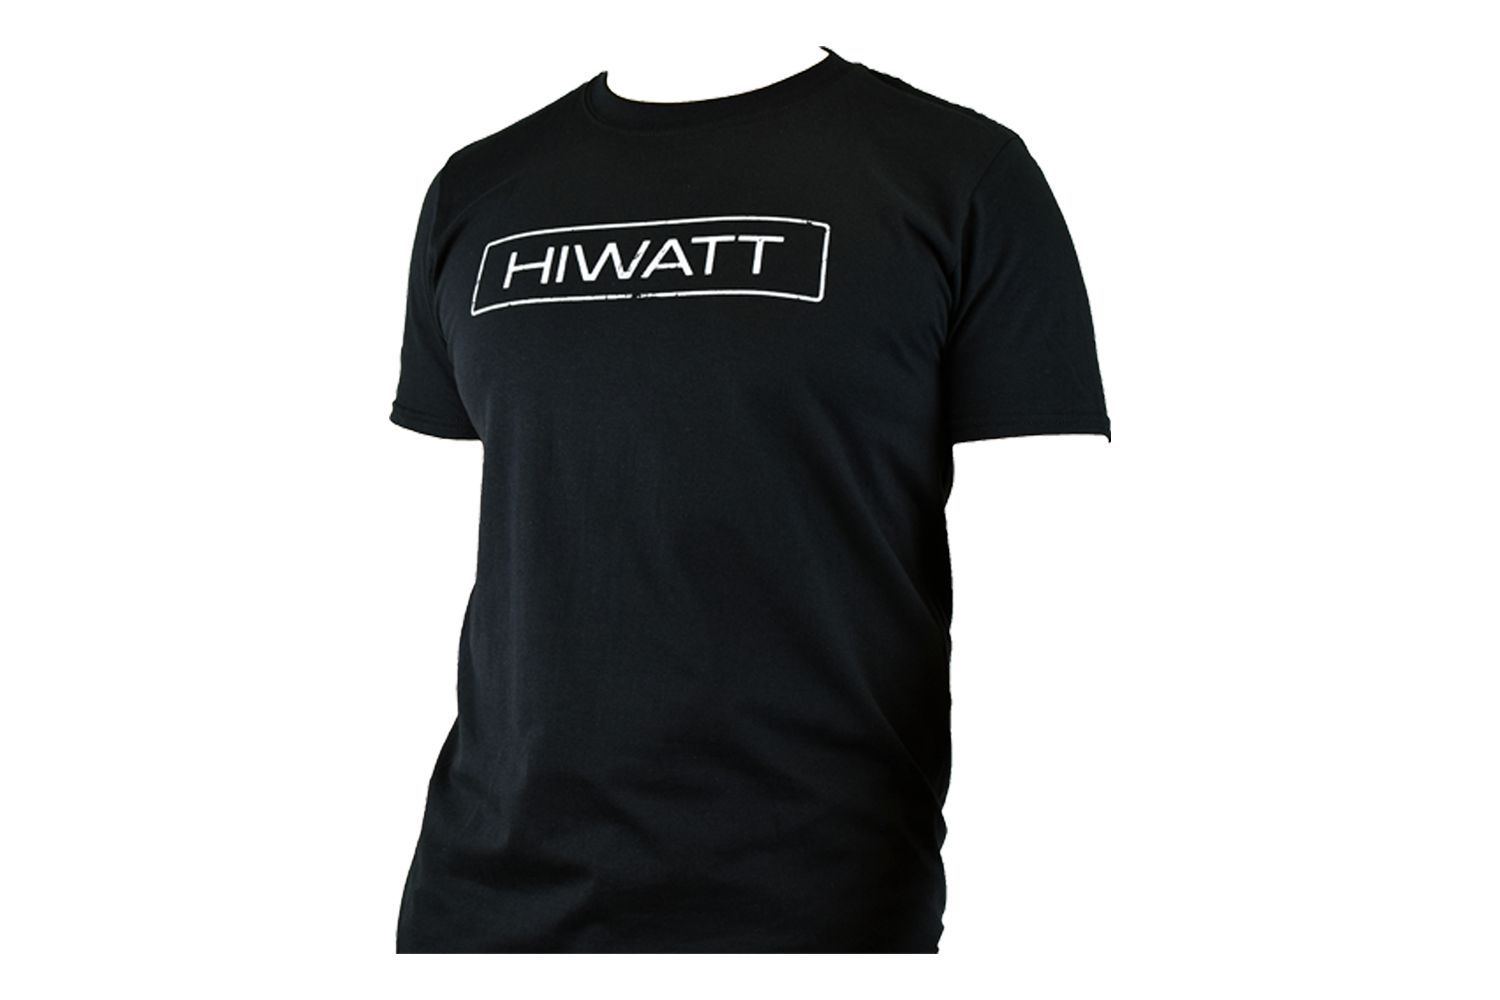 Hiwatt Distressed Logo Tee Black